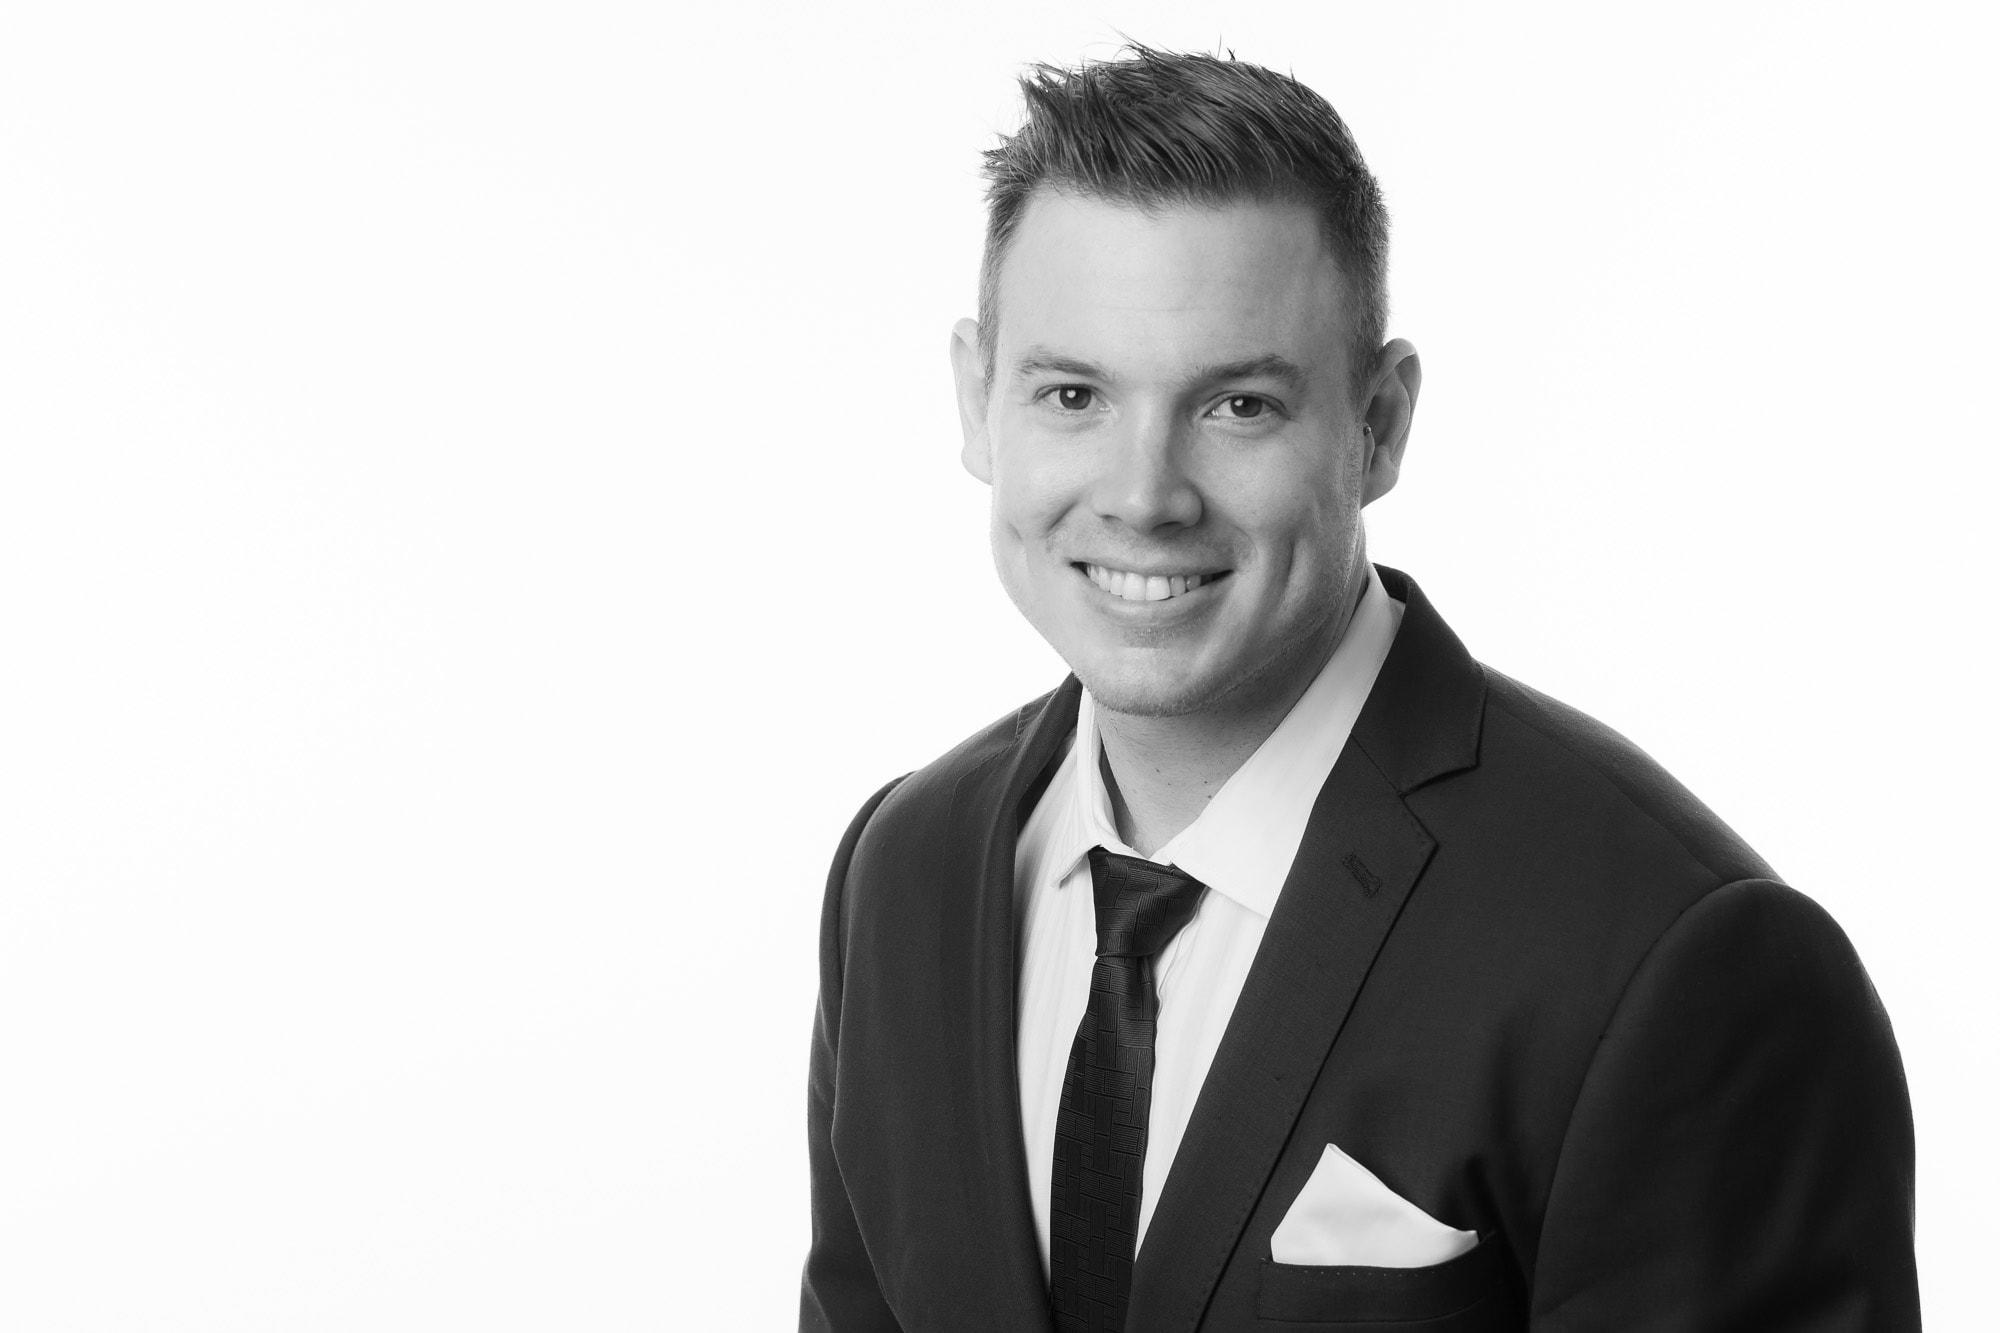 Gold Coast Corporate Headshot